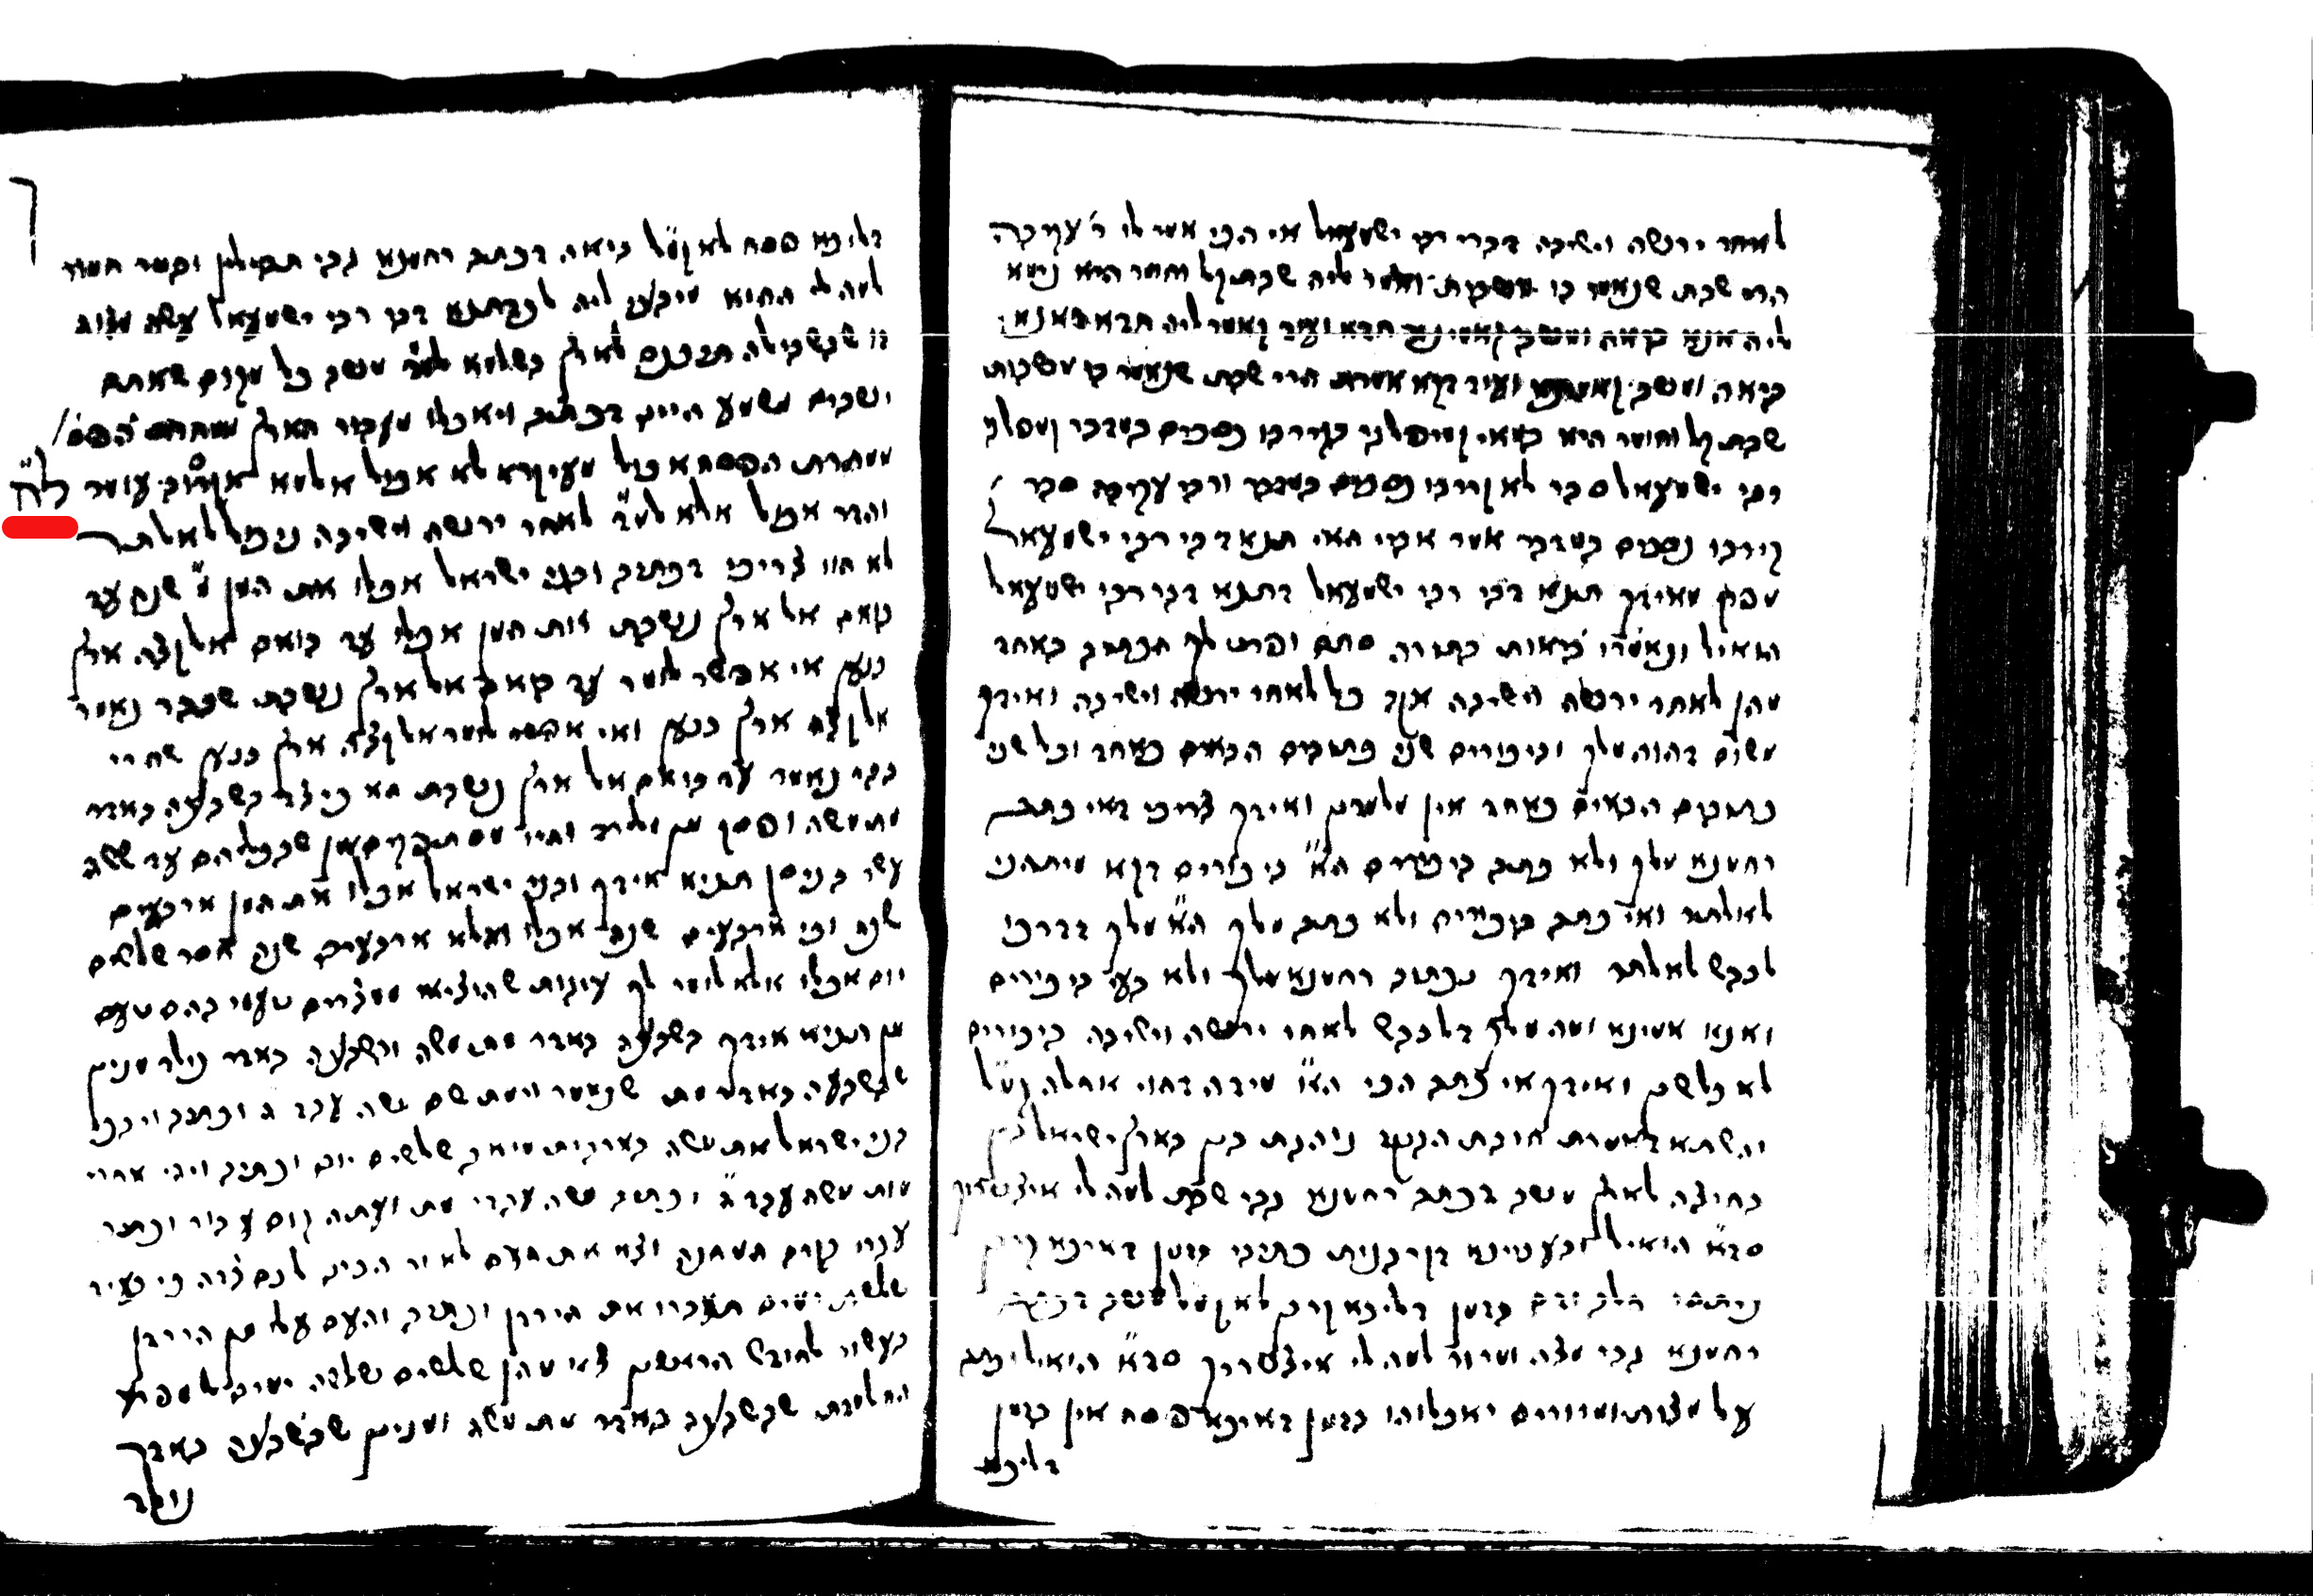 Talmud Kiddushin,1700. Page 38a (לח) is marked. From the Library of The Jewish Theological Seminary, New York, Record #000009185.